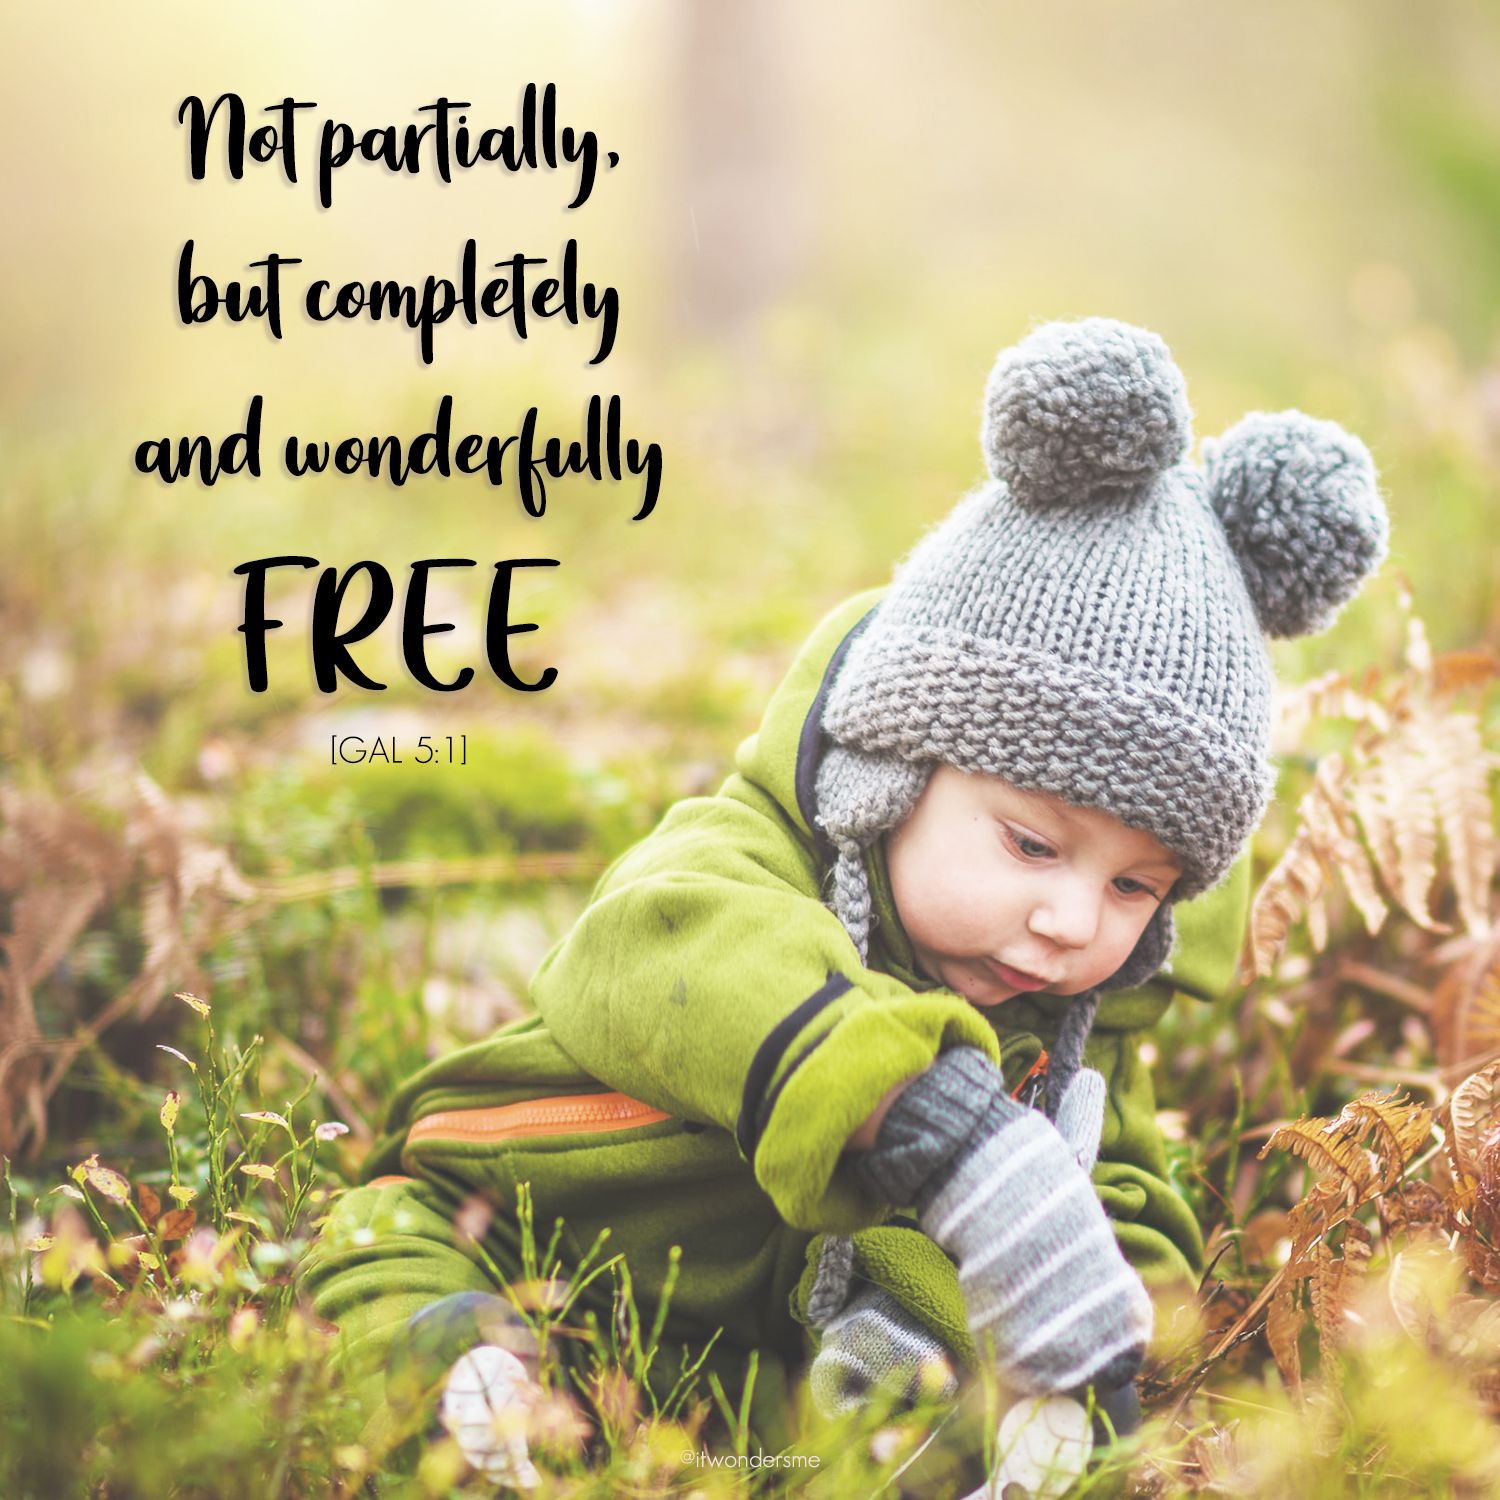 You are completely free in Christ